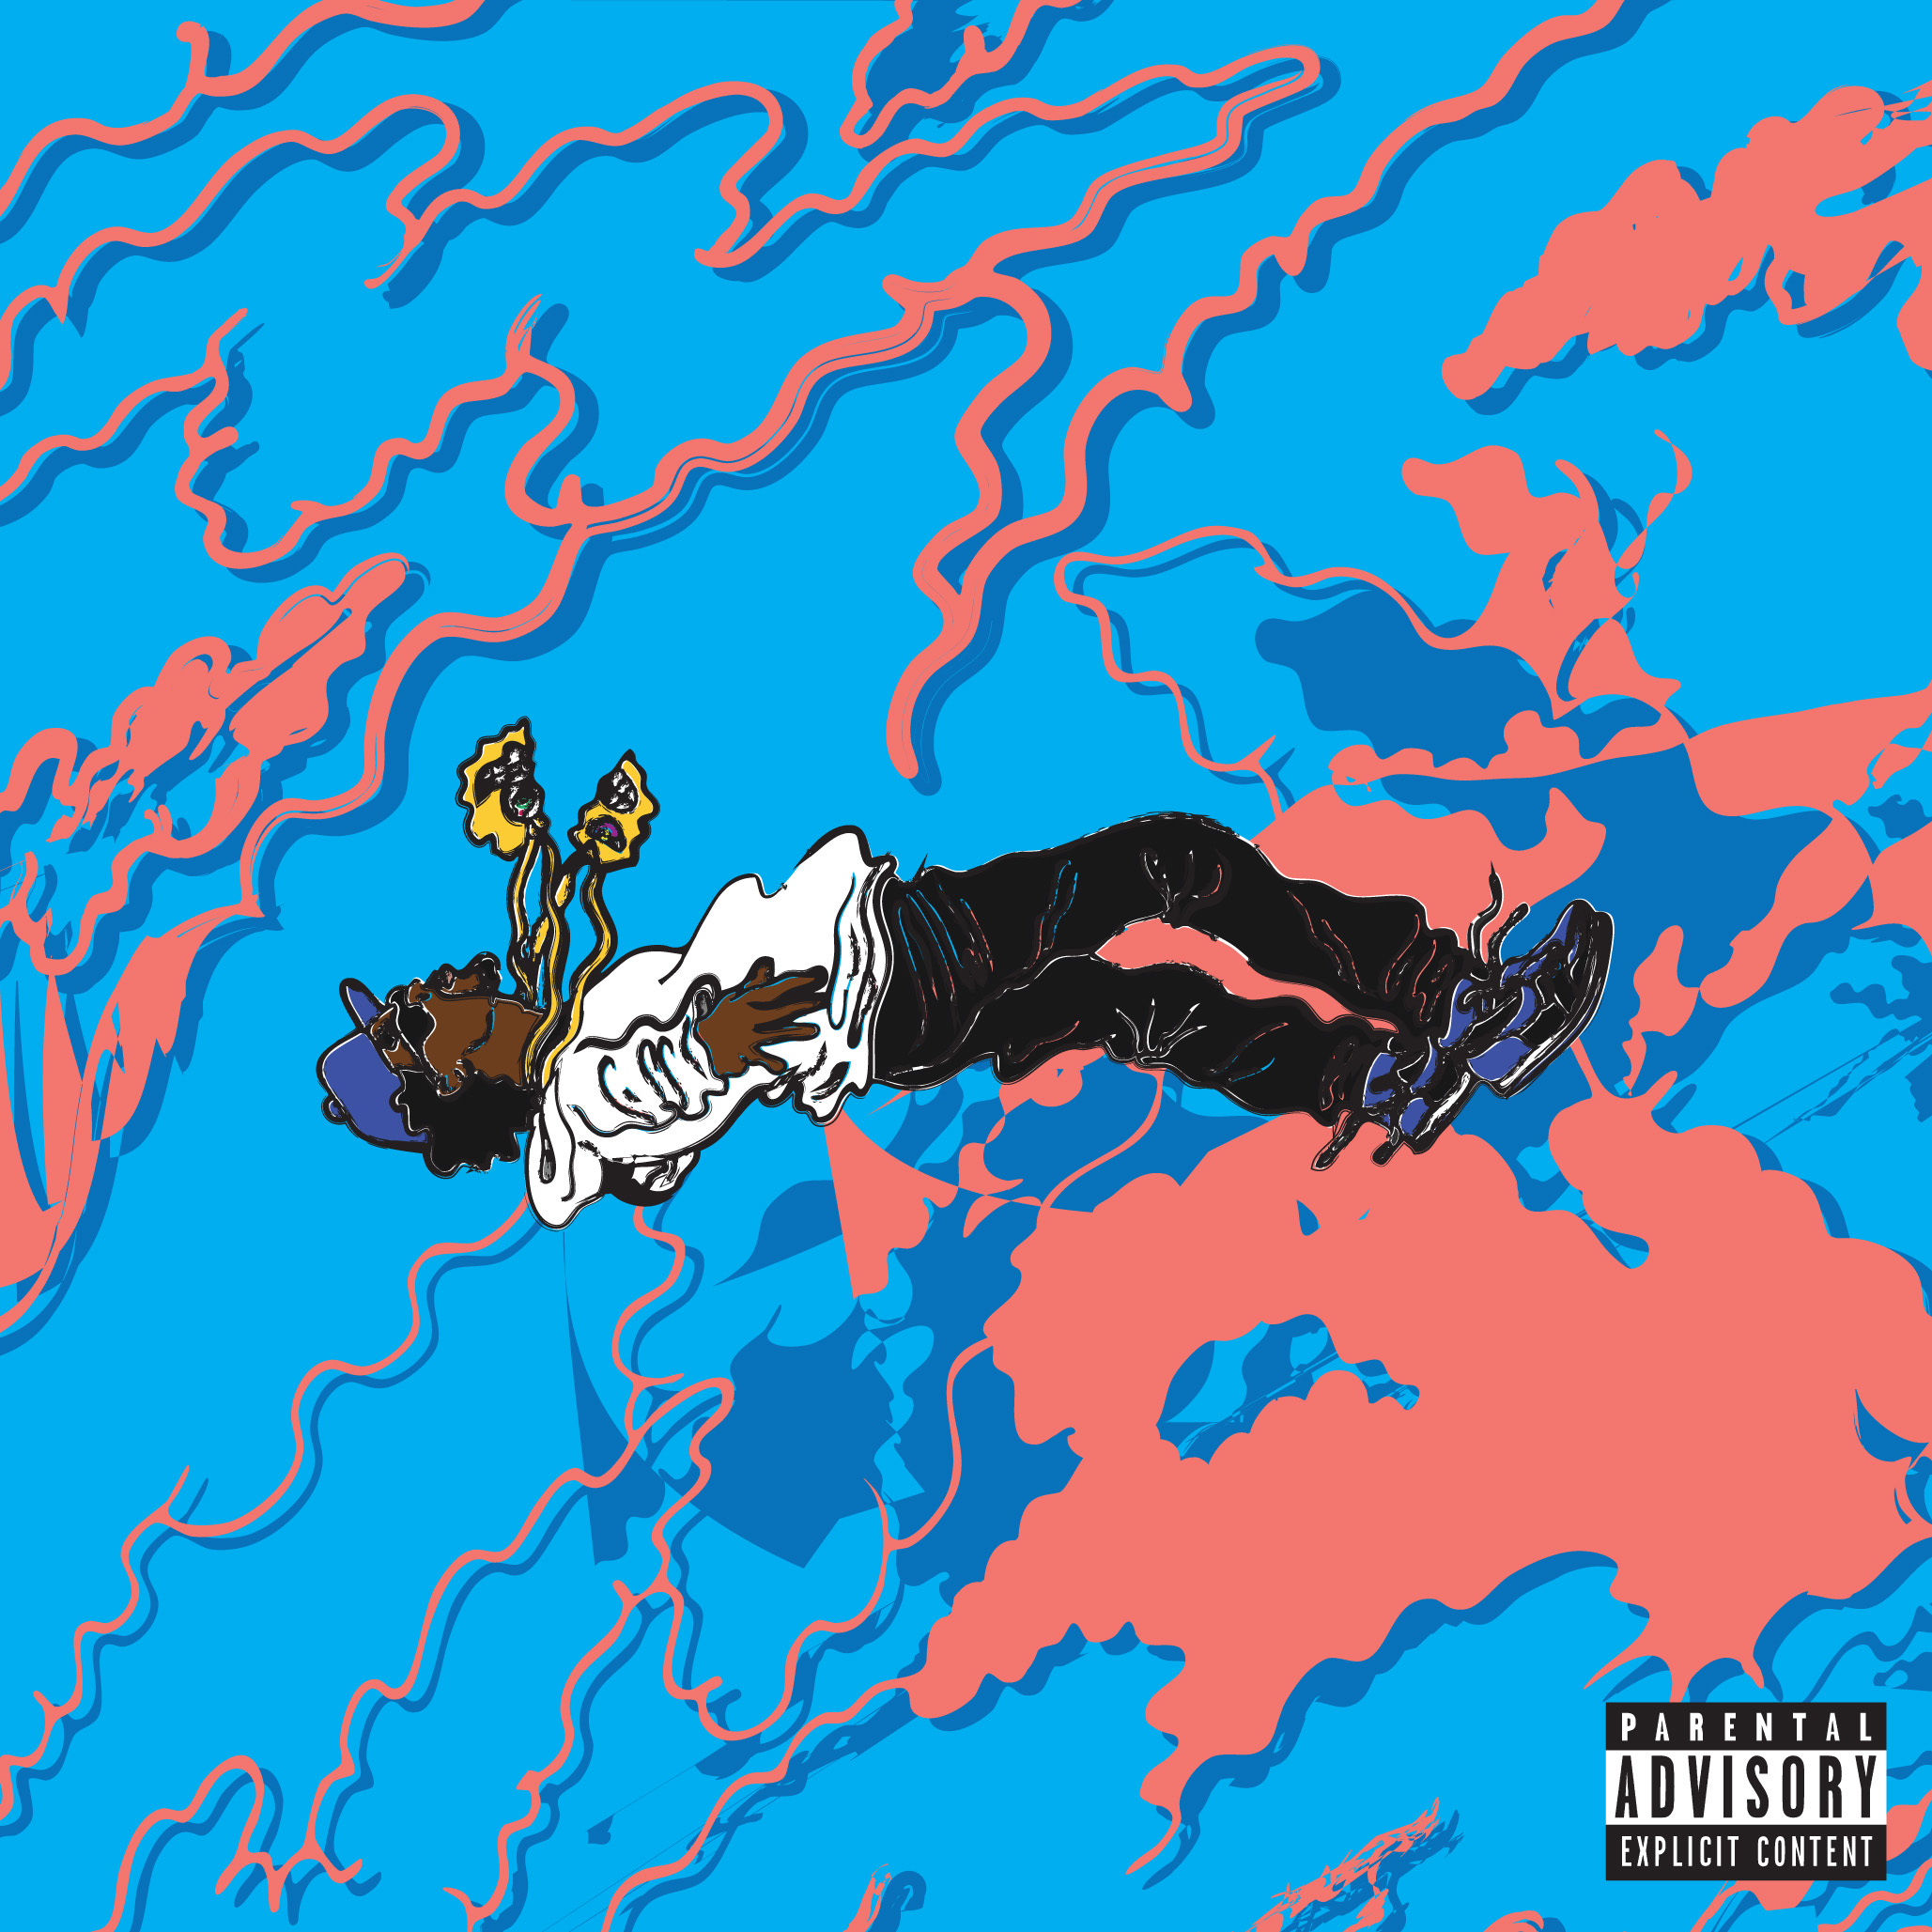 IAMSU! DEBUT ALBUM SINCERELY YOURS NOW ON ITUNES